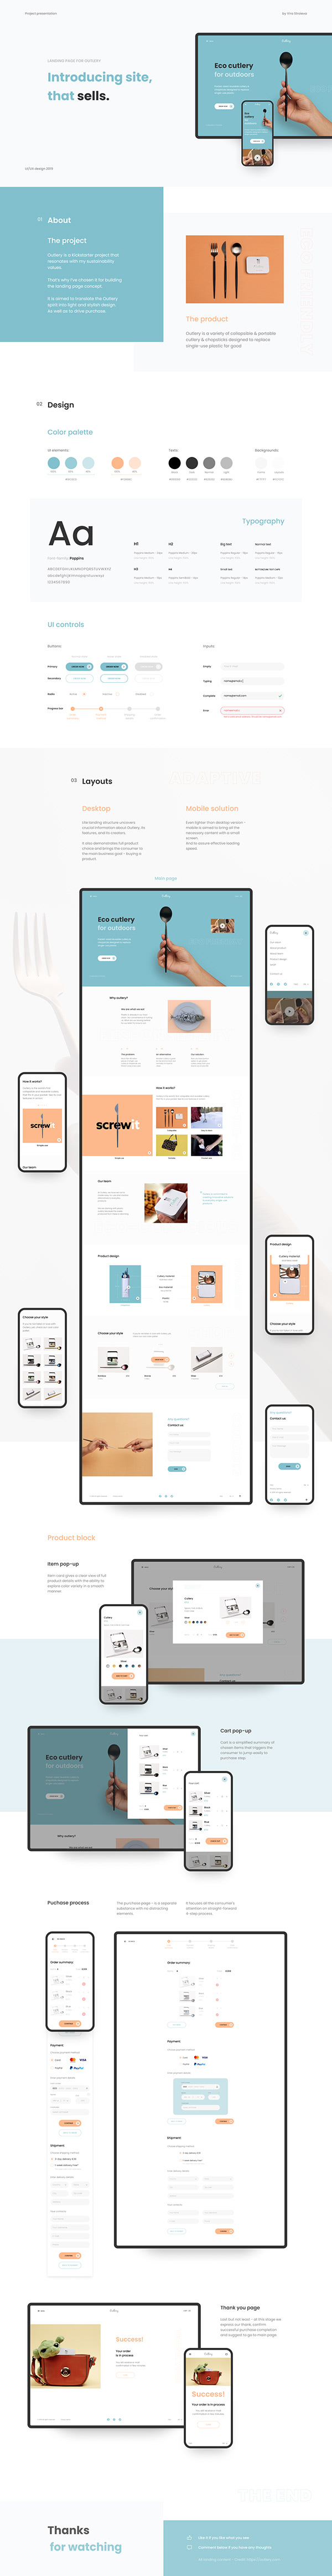 Outlery - Landing page for Kickstarter project